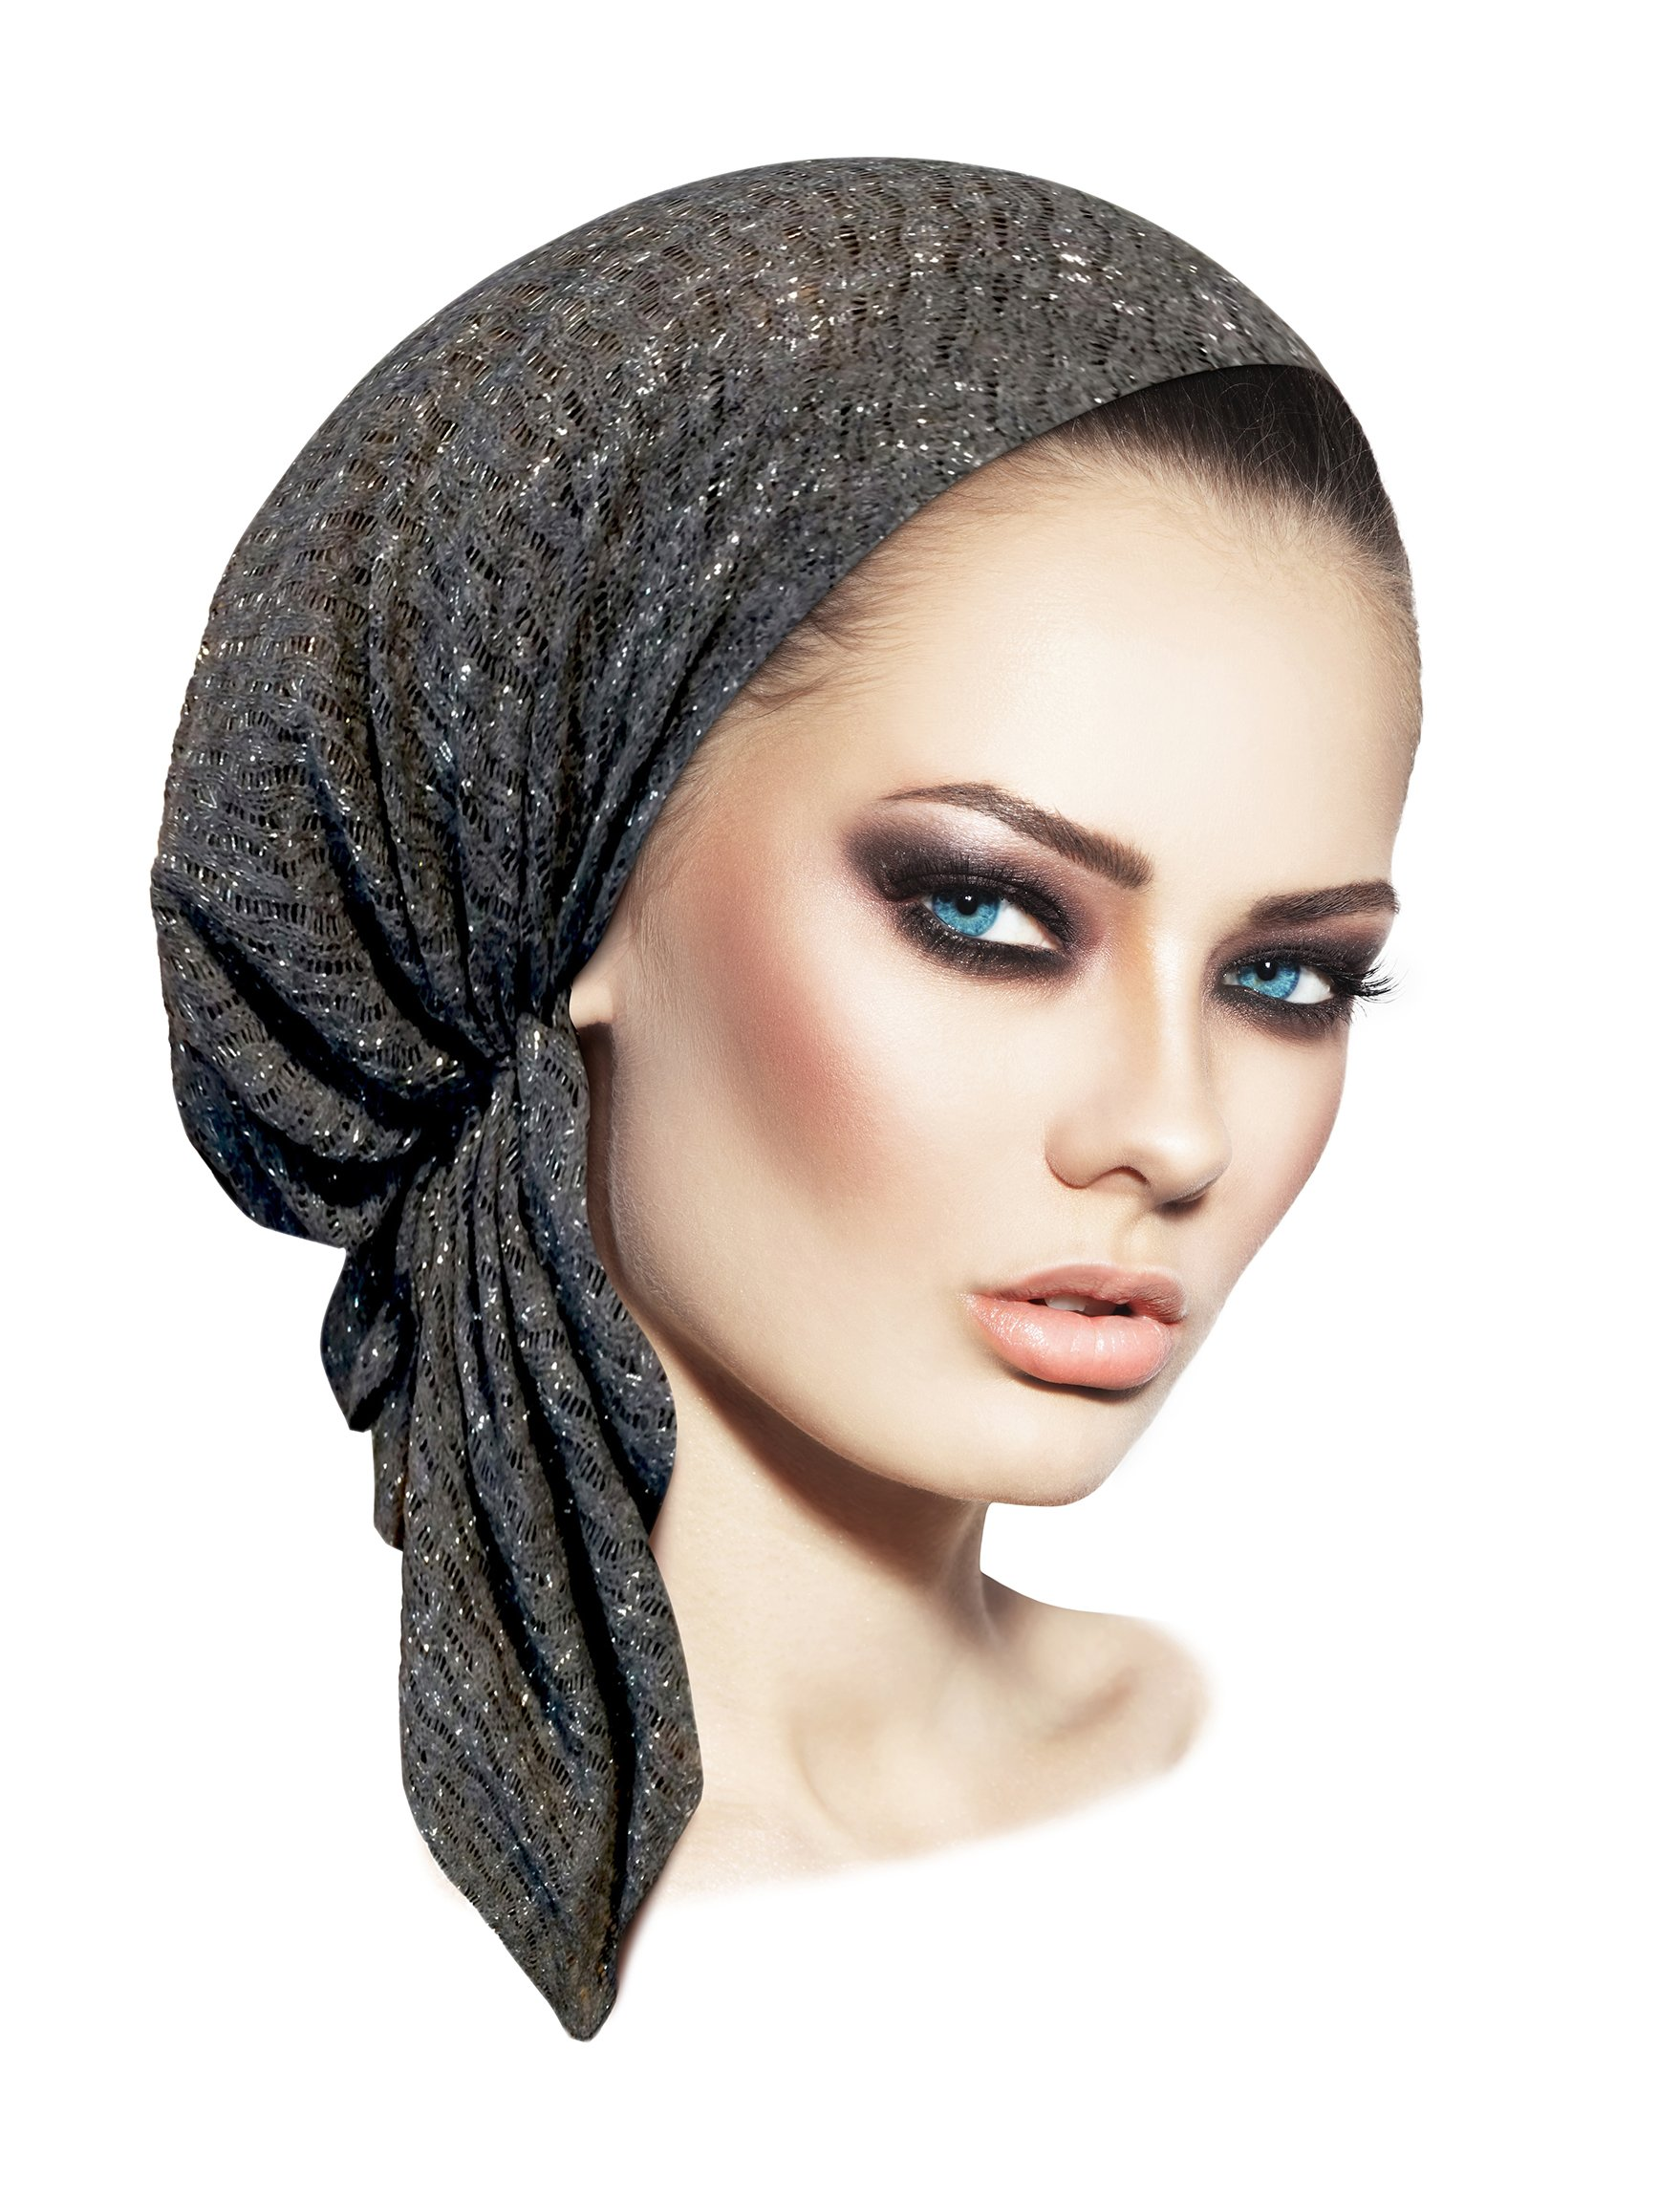 Boho Chic Gray Pre-Tied Head-Scarf Tichel Breathable Sparkly Knit Collection! (Charcoal Gray Silver Short - sk07)